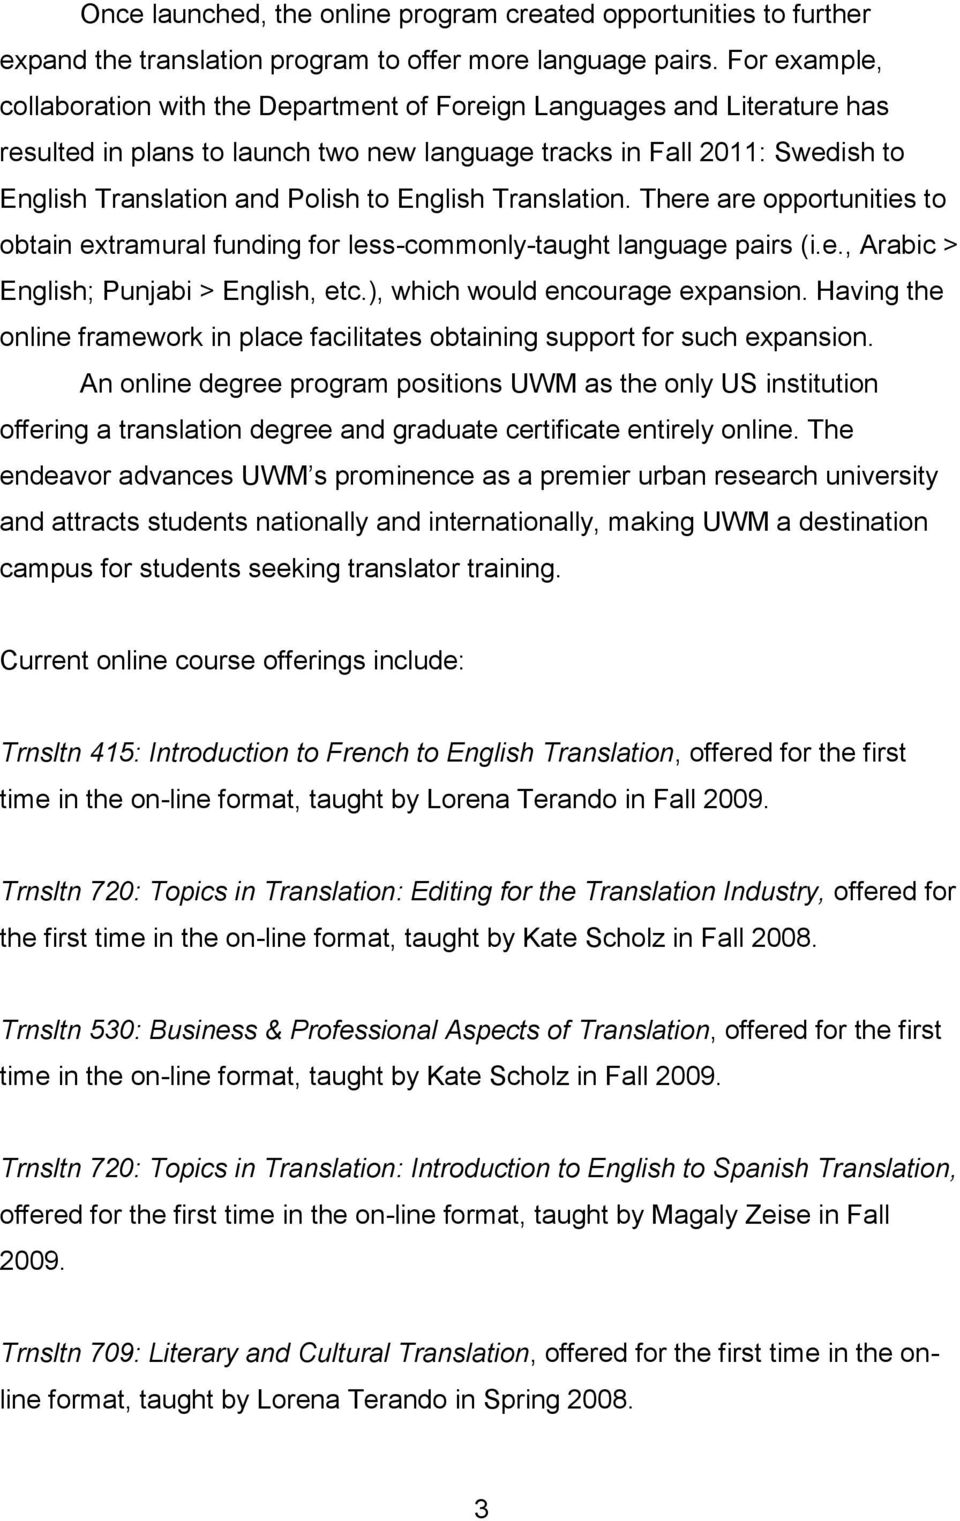 English Translation. There are opportunities to obtain extramural funding for less-commonly-taught language pairs (i.e., Arabic > English; Punjabi > English, etc.), which would encourage expansion.